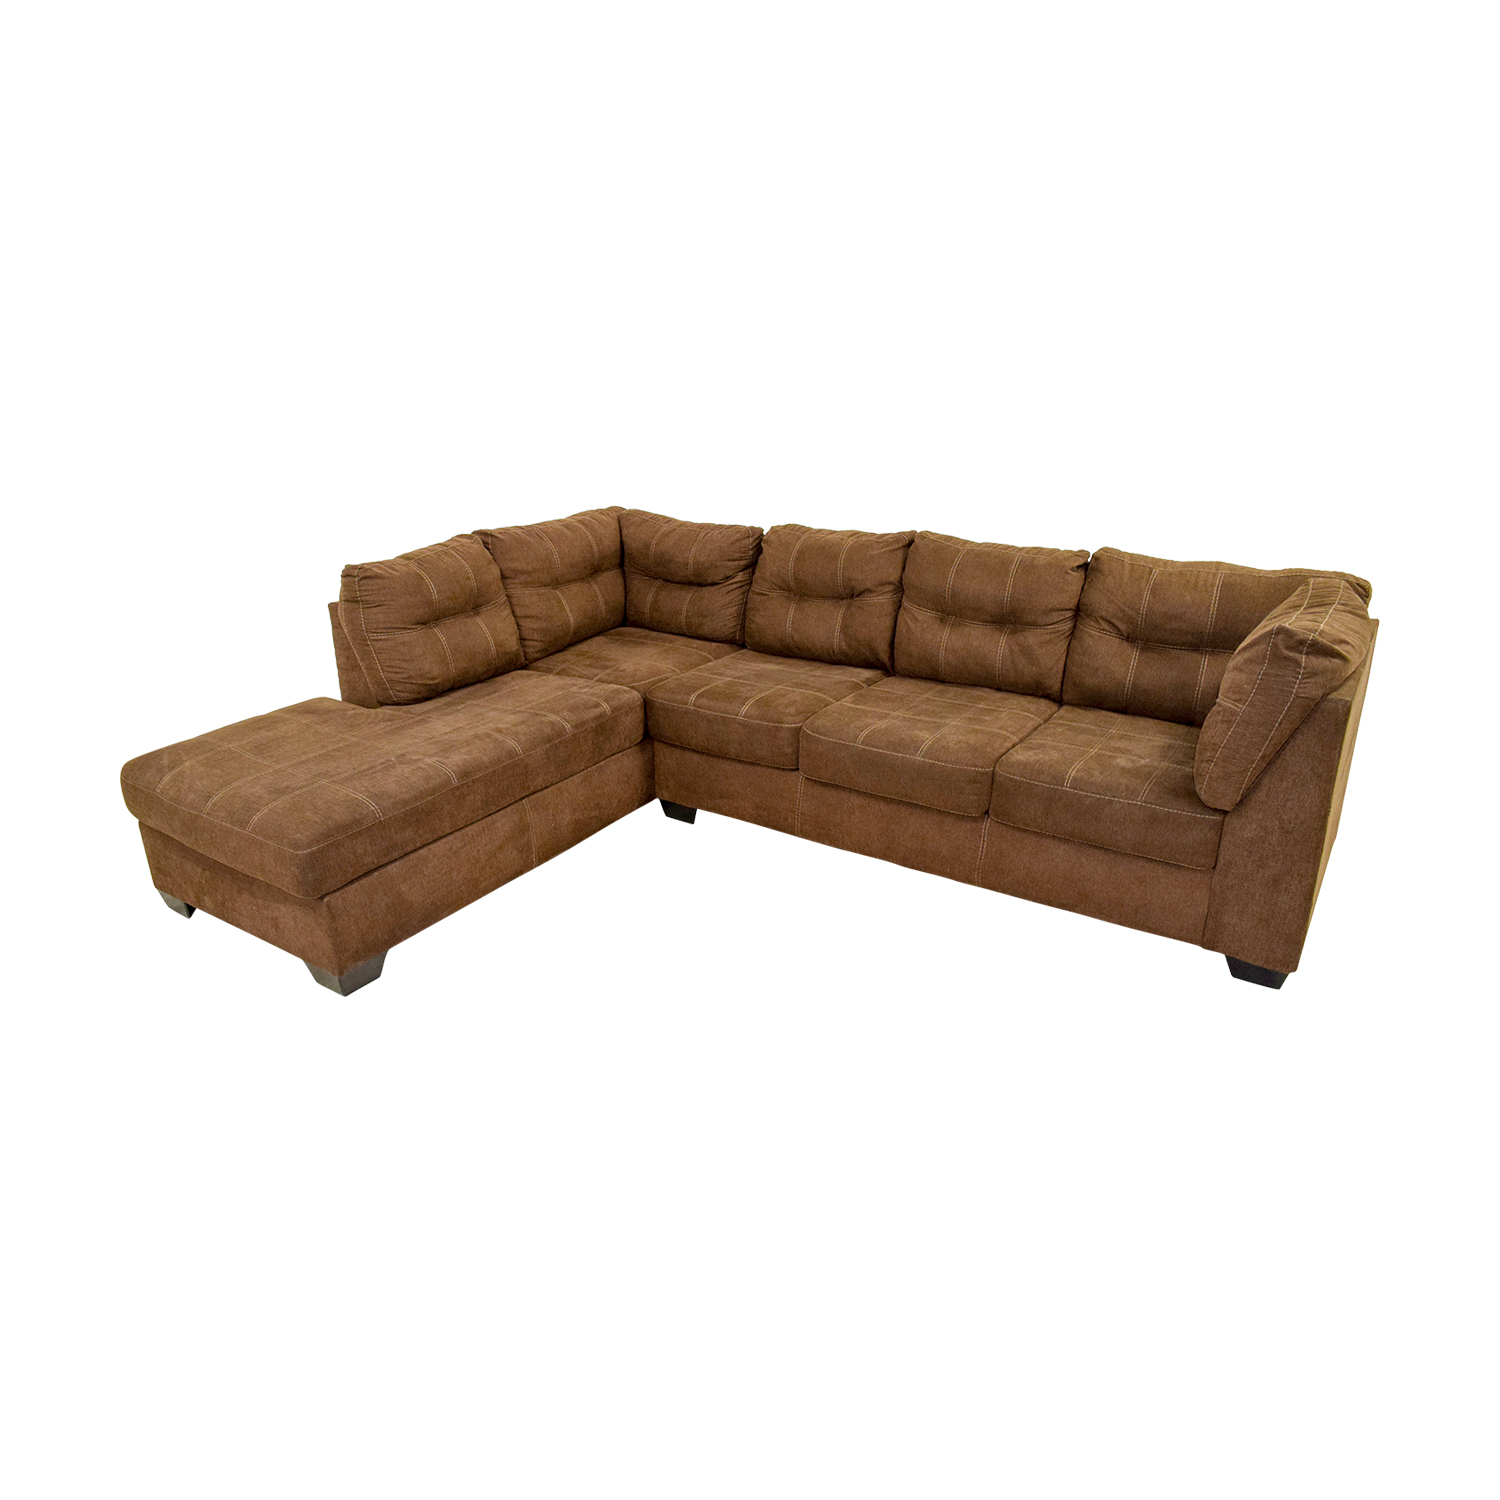 Brown L-Shaped Chaise Sectional Sofa for sale